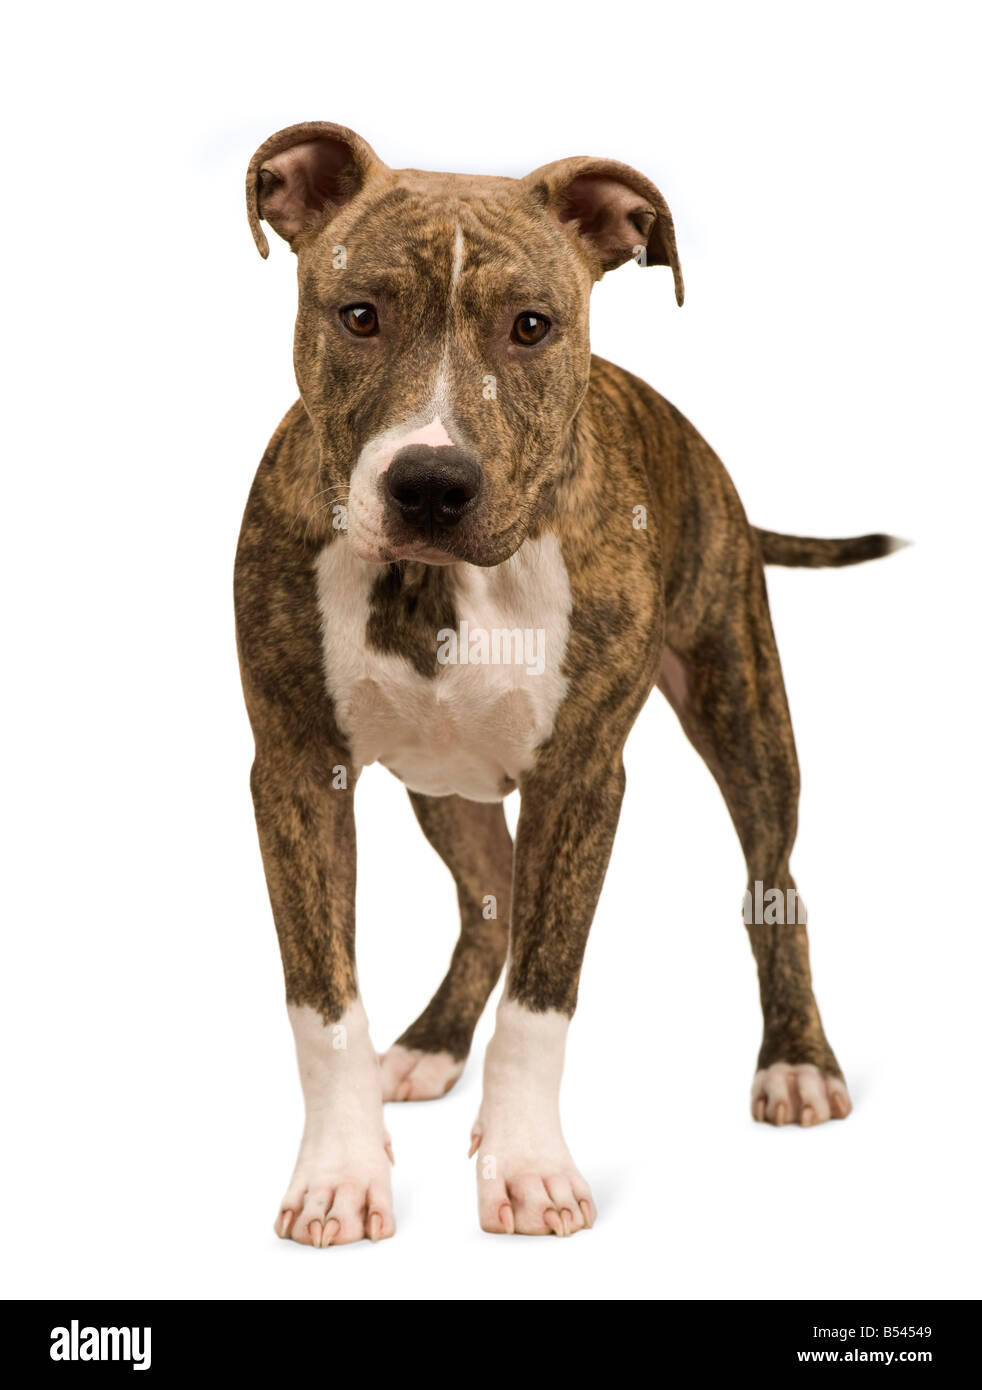 American Staffordshire terrier puppy 5 months in front of a white background - Stock Image